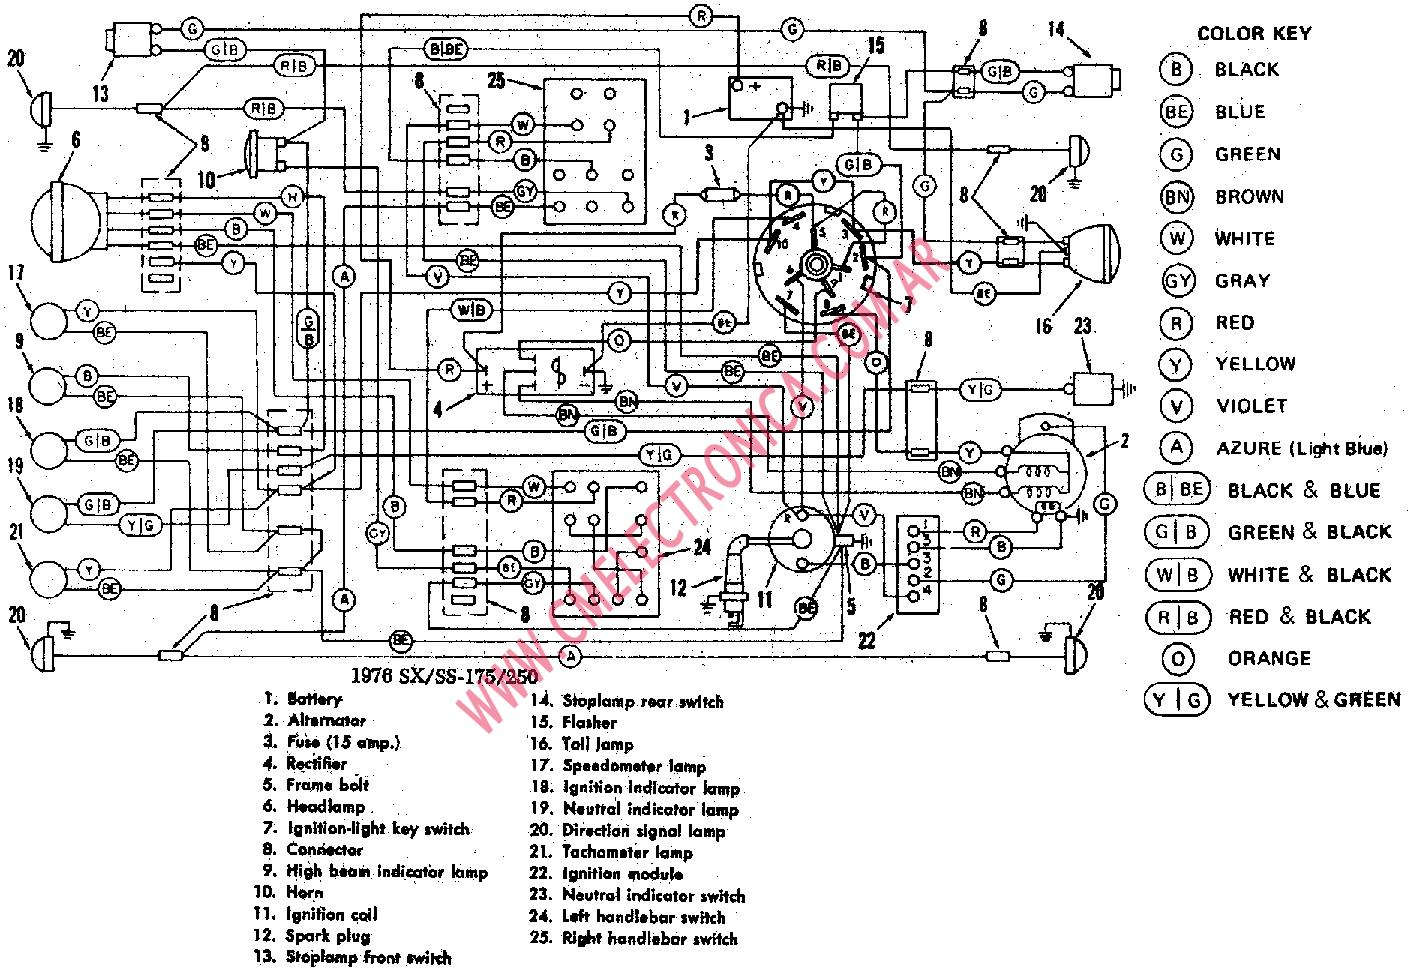 Harley Davidson Softail Custom Turn Signal Wiring Diagram